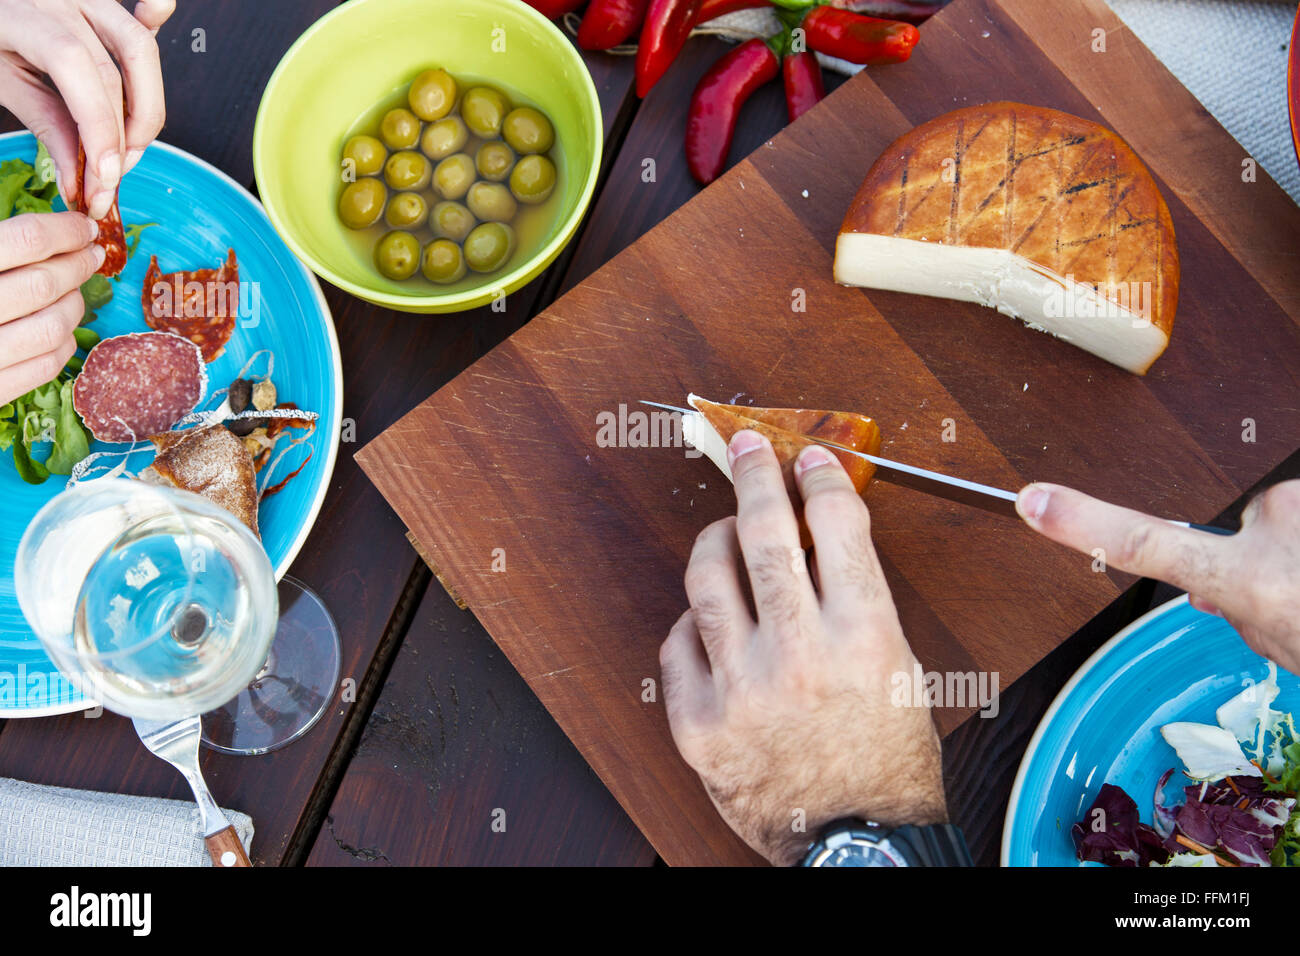 Man cutting cheese on garden party - Stock Image